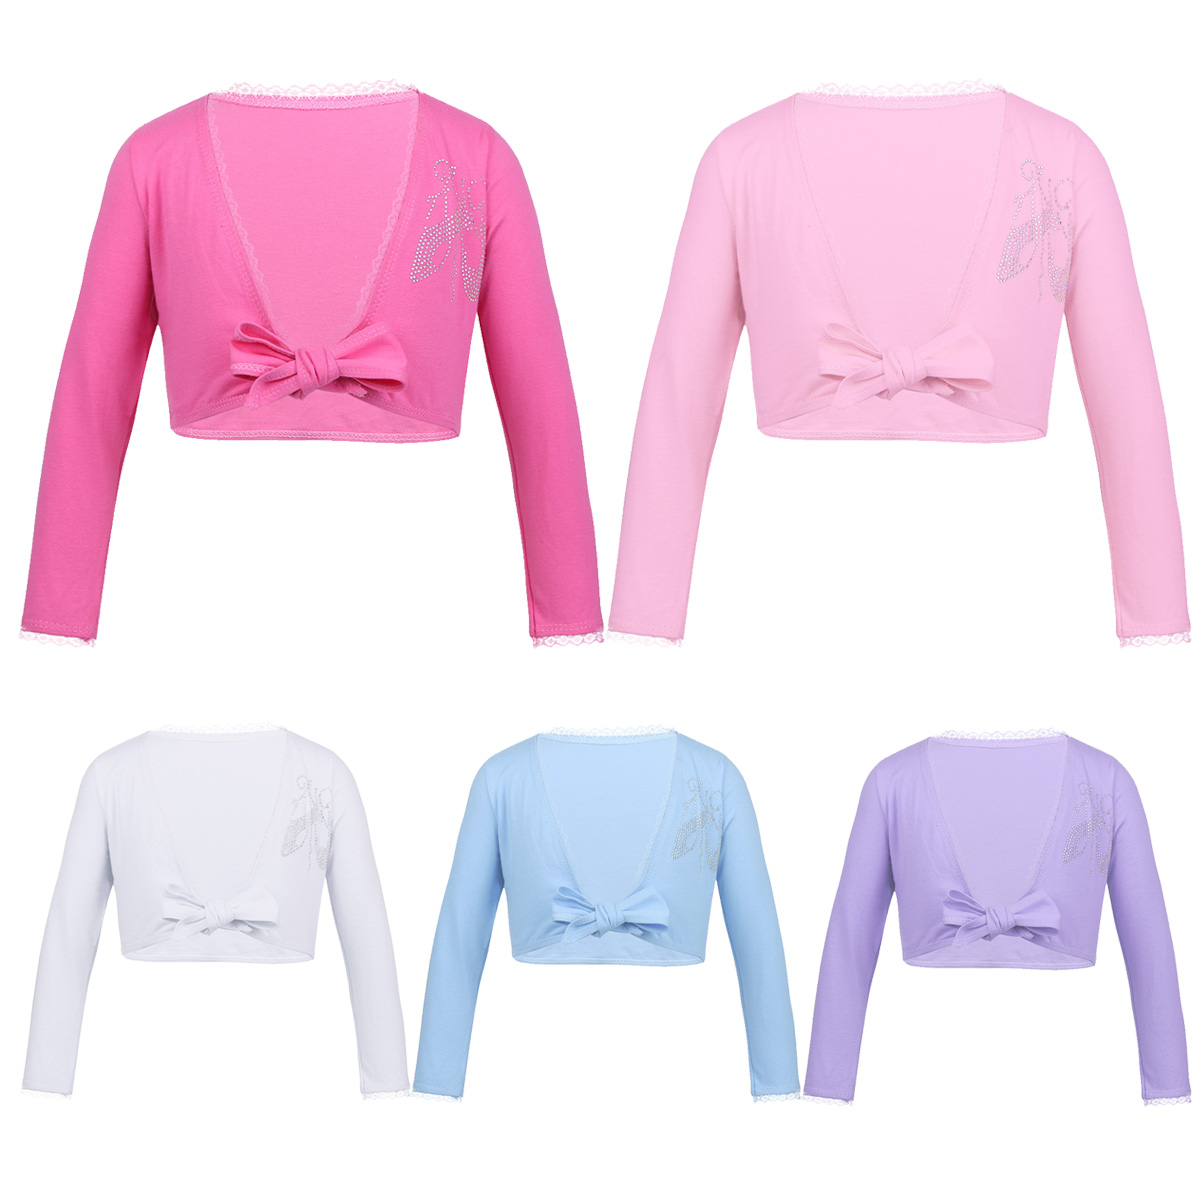 Cotton ballet wrap crossover tops various colours and sizes